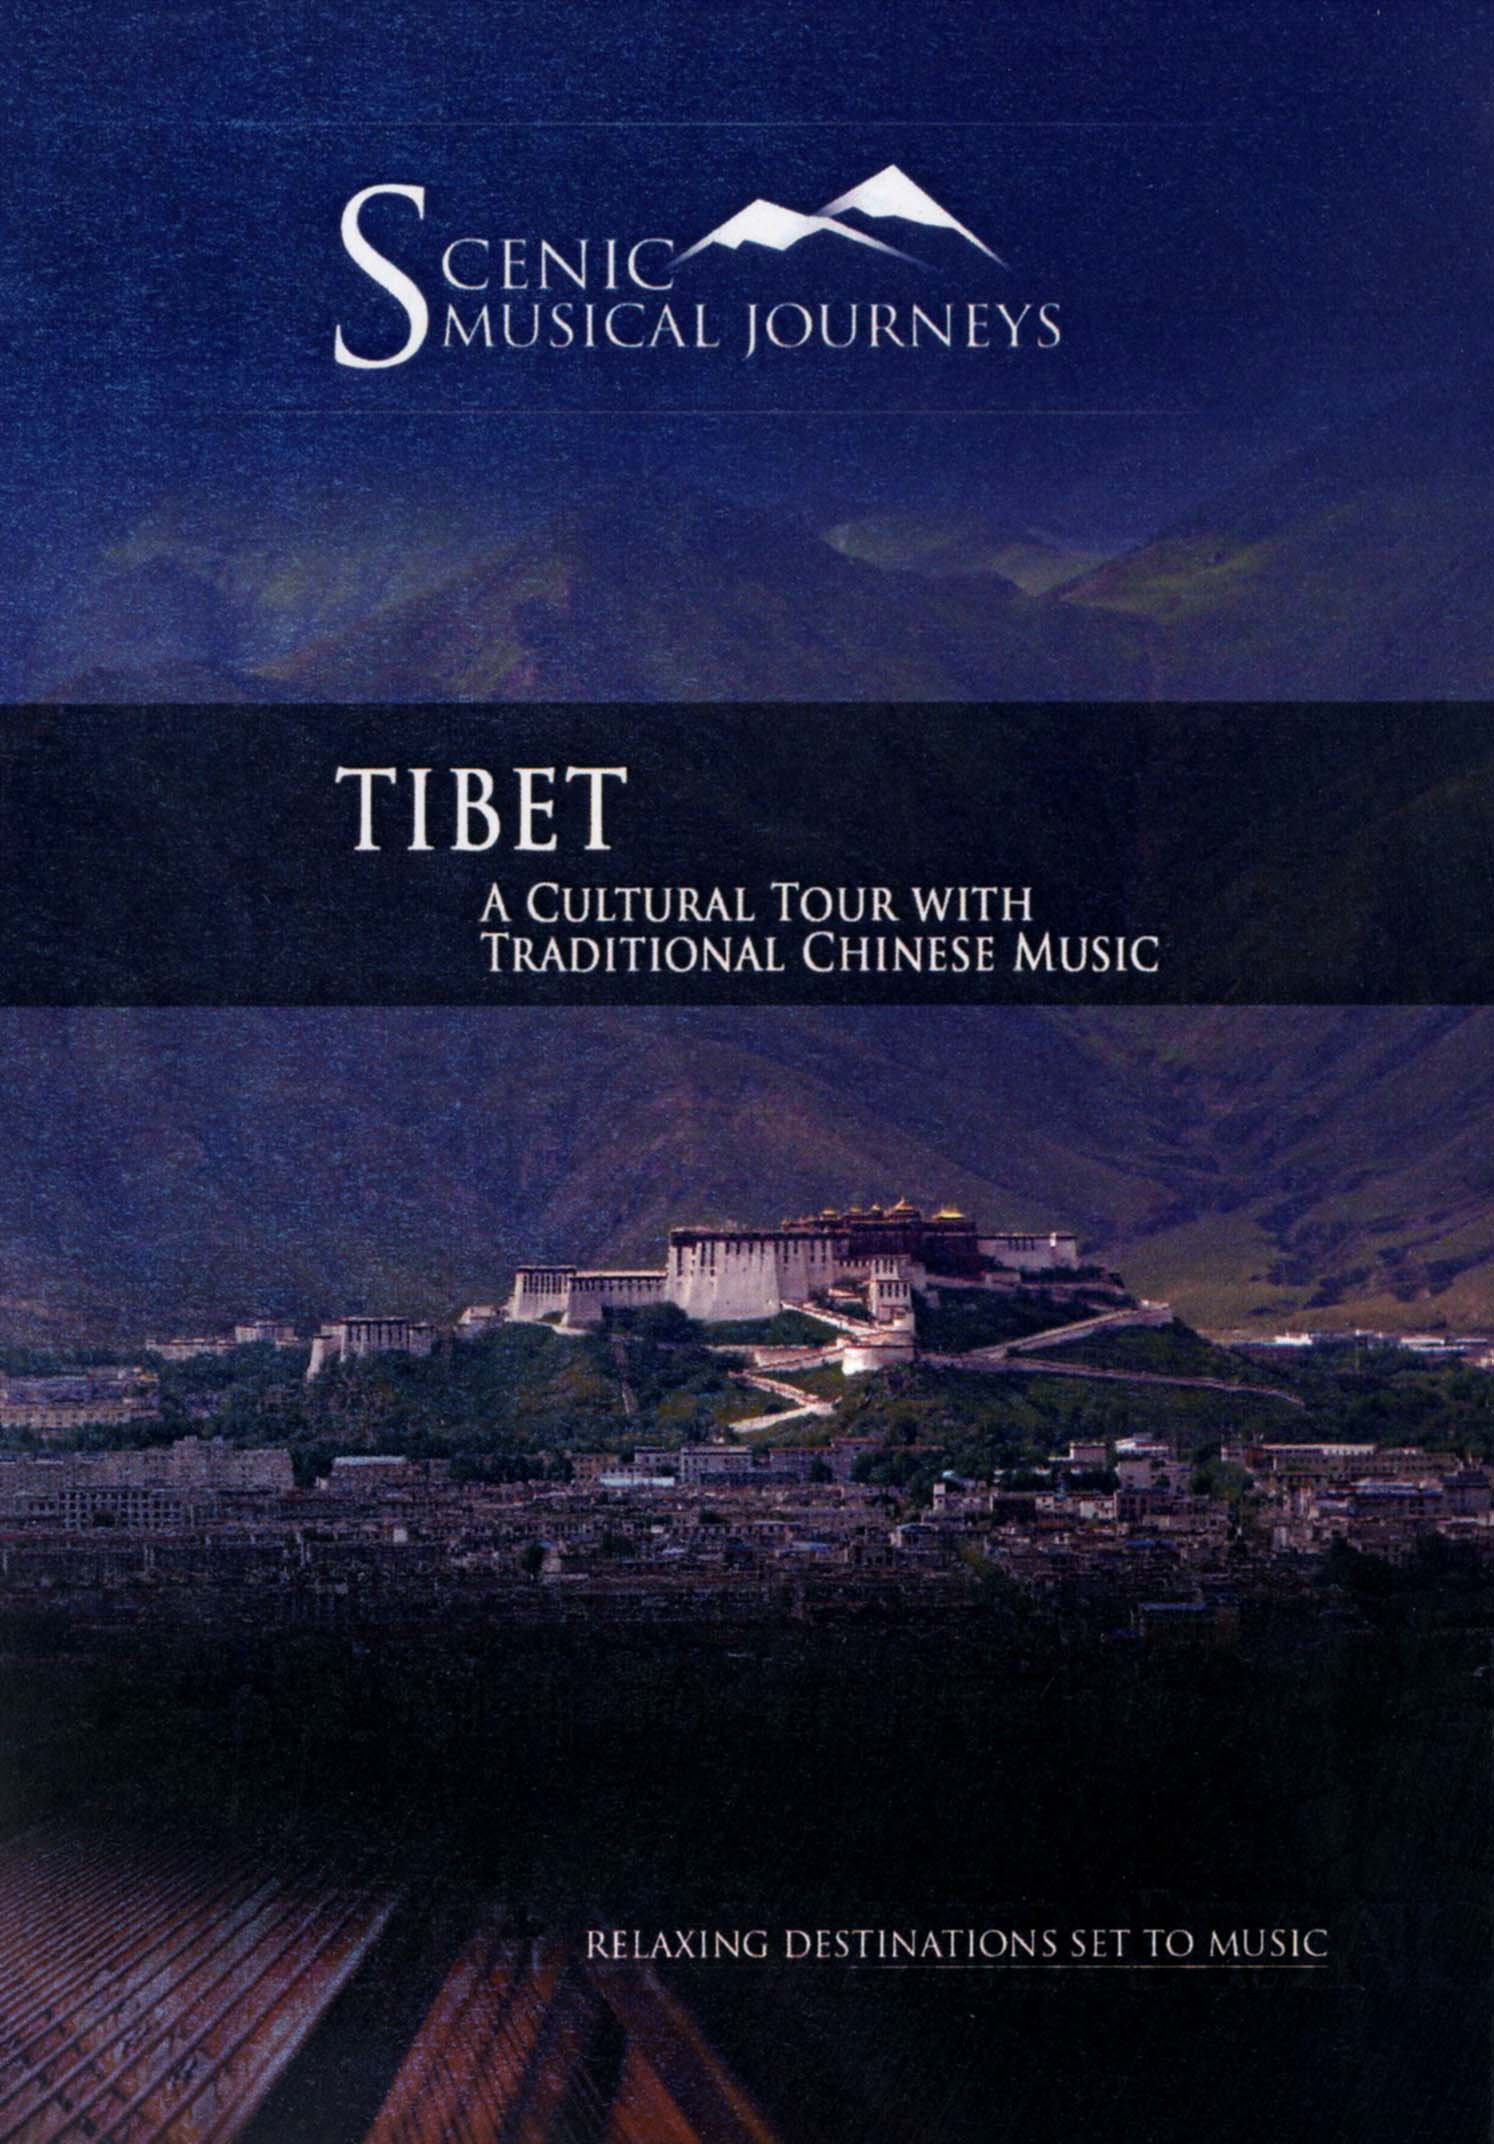 Scenic Musical Journeys: Tibet - A Cultural Tour With Traditional Chinese Music